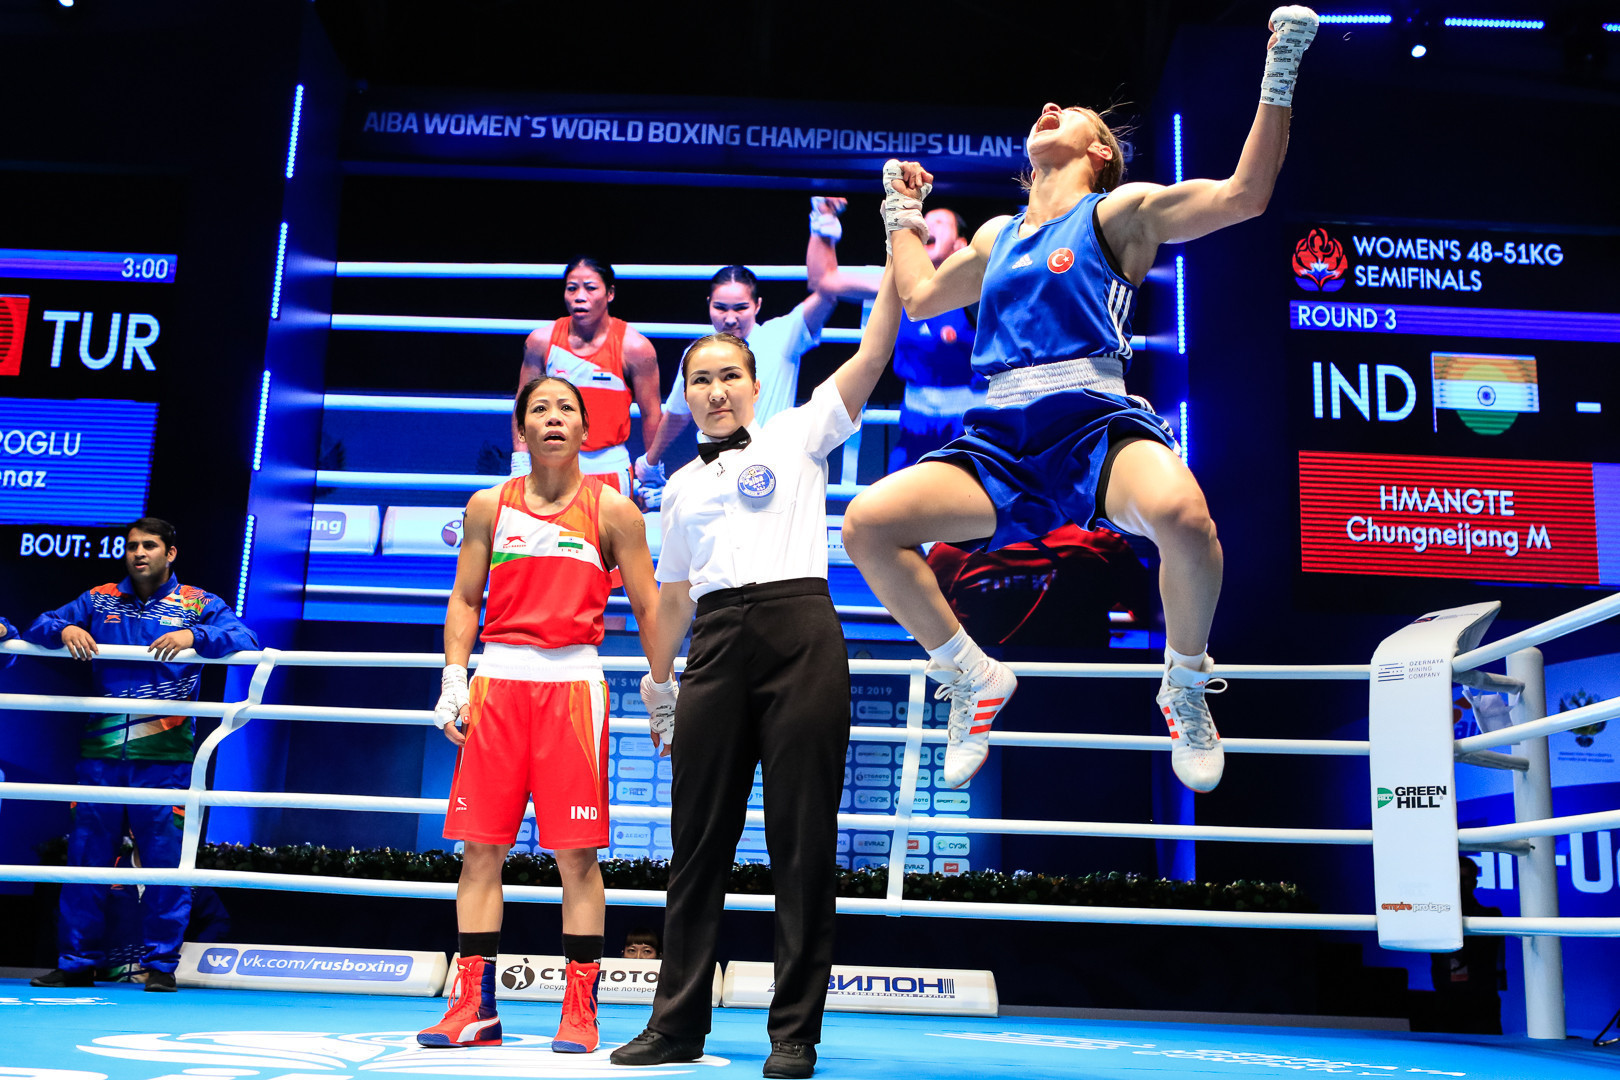 Mary Kom of India was in disbelief after it was decided she lost 4-1 to Buse Çakıroğlu of Turkey at the Women's World Boxing Championships ©Russian Boxing Federation